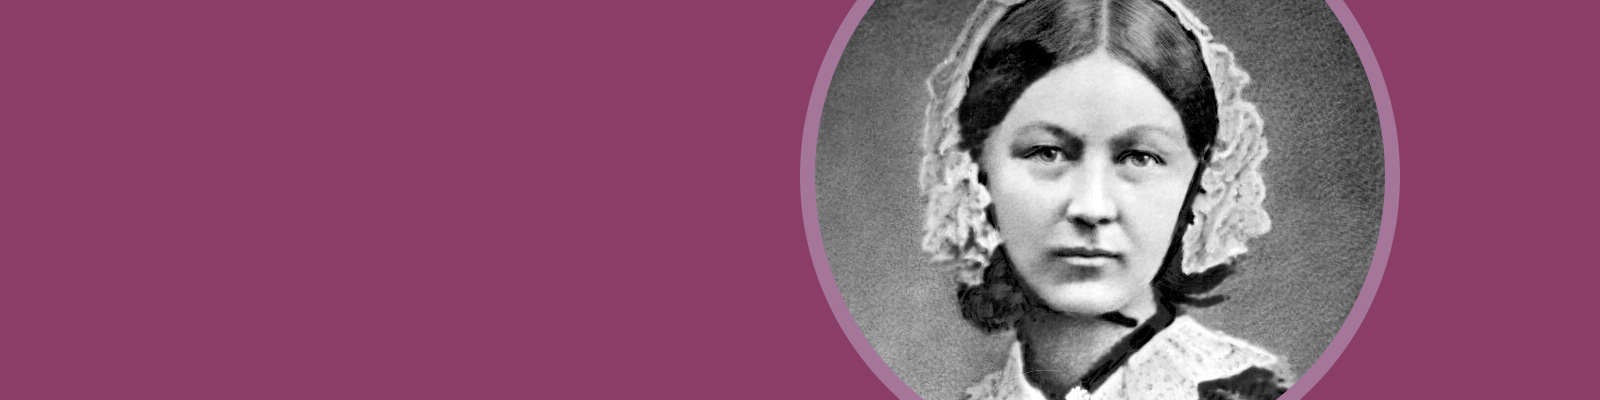 Pioneering statistician Florence Nightingale